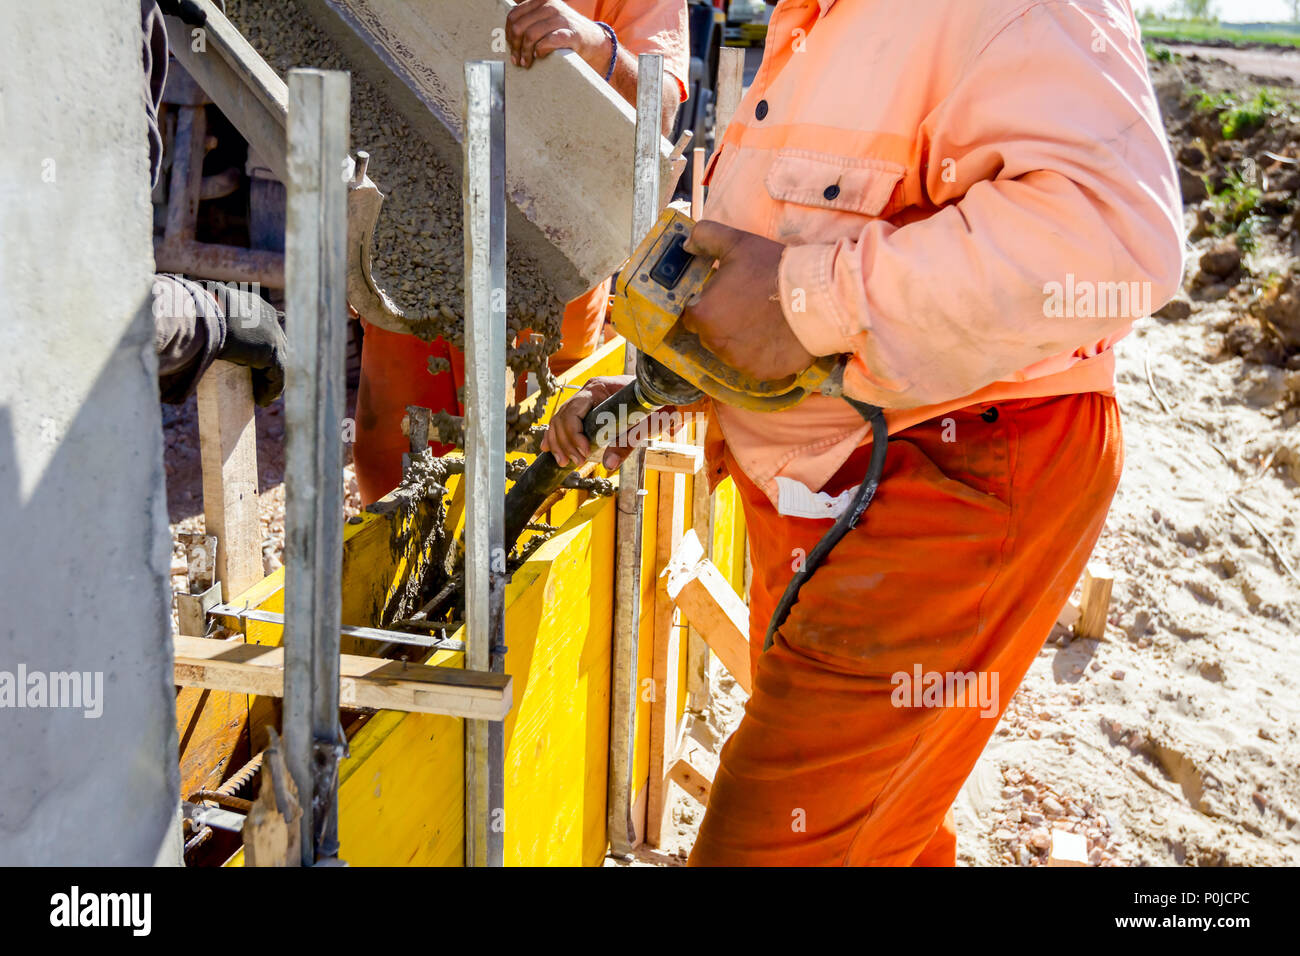 Worker is using power tool, compactor, at concreting base of edifice wall. - Stock Image